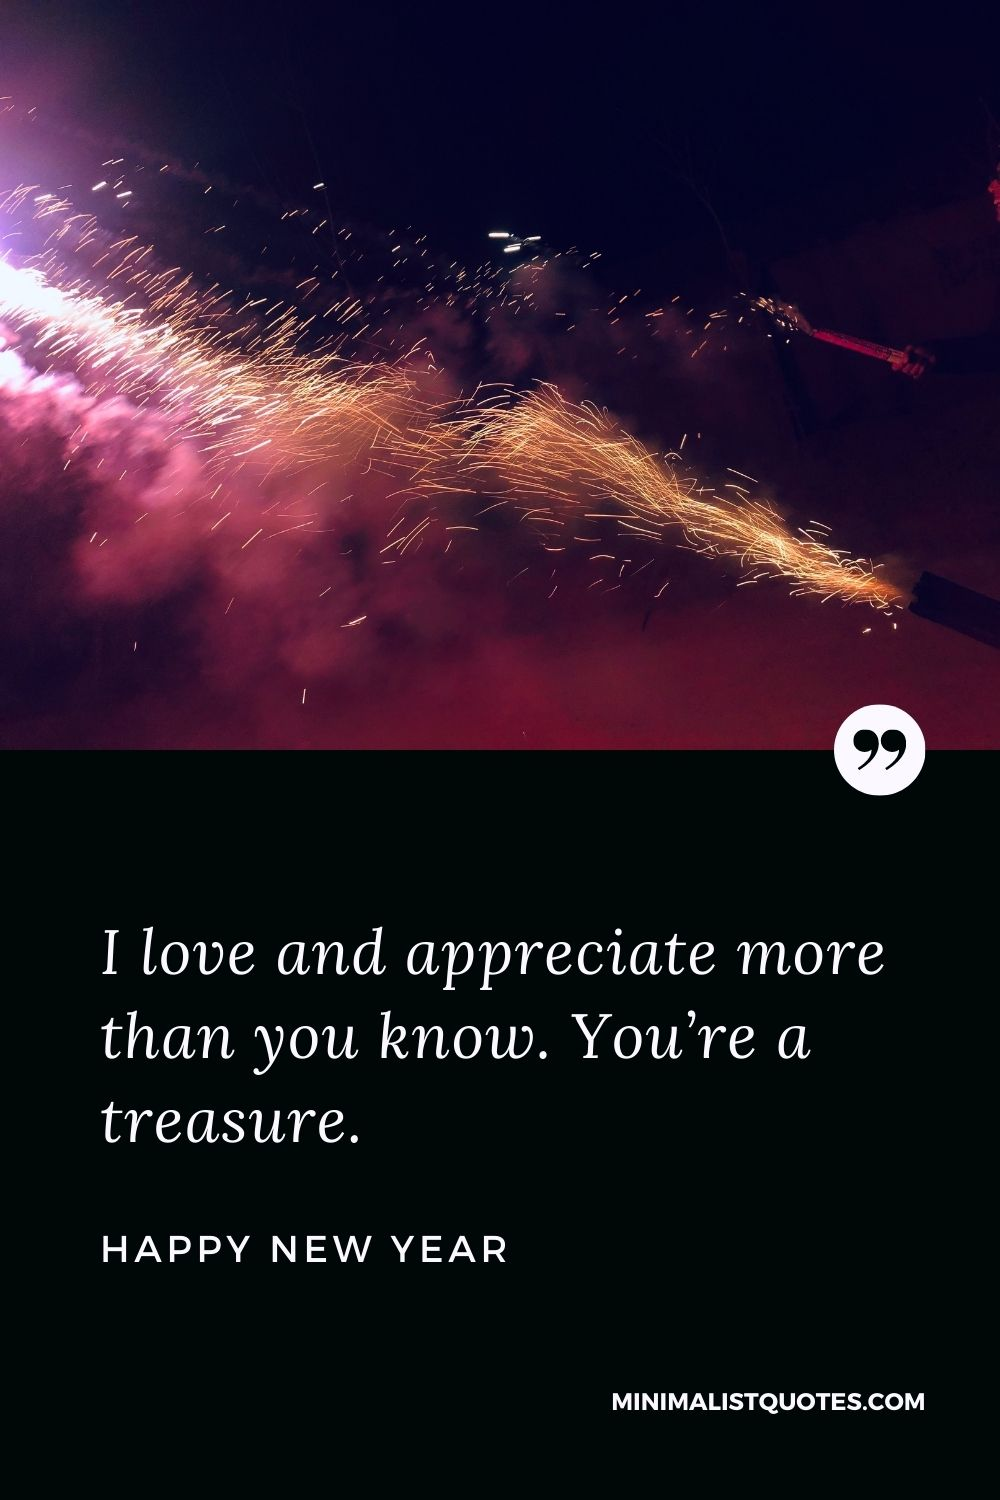 New Year wish, quote & message with image: I love and appreciate more than you know. You're a treasure. Happy New Year!